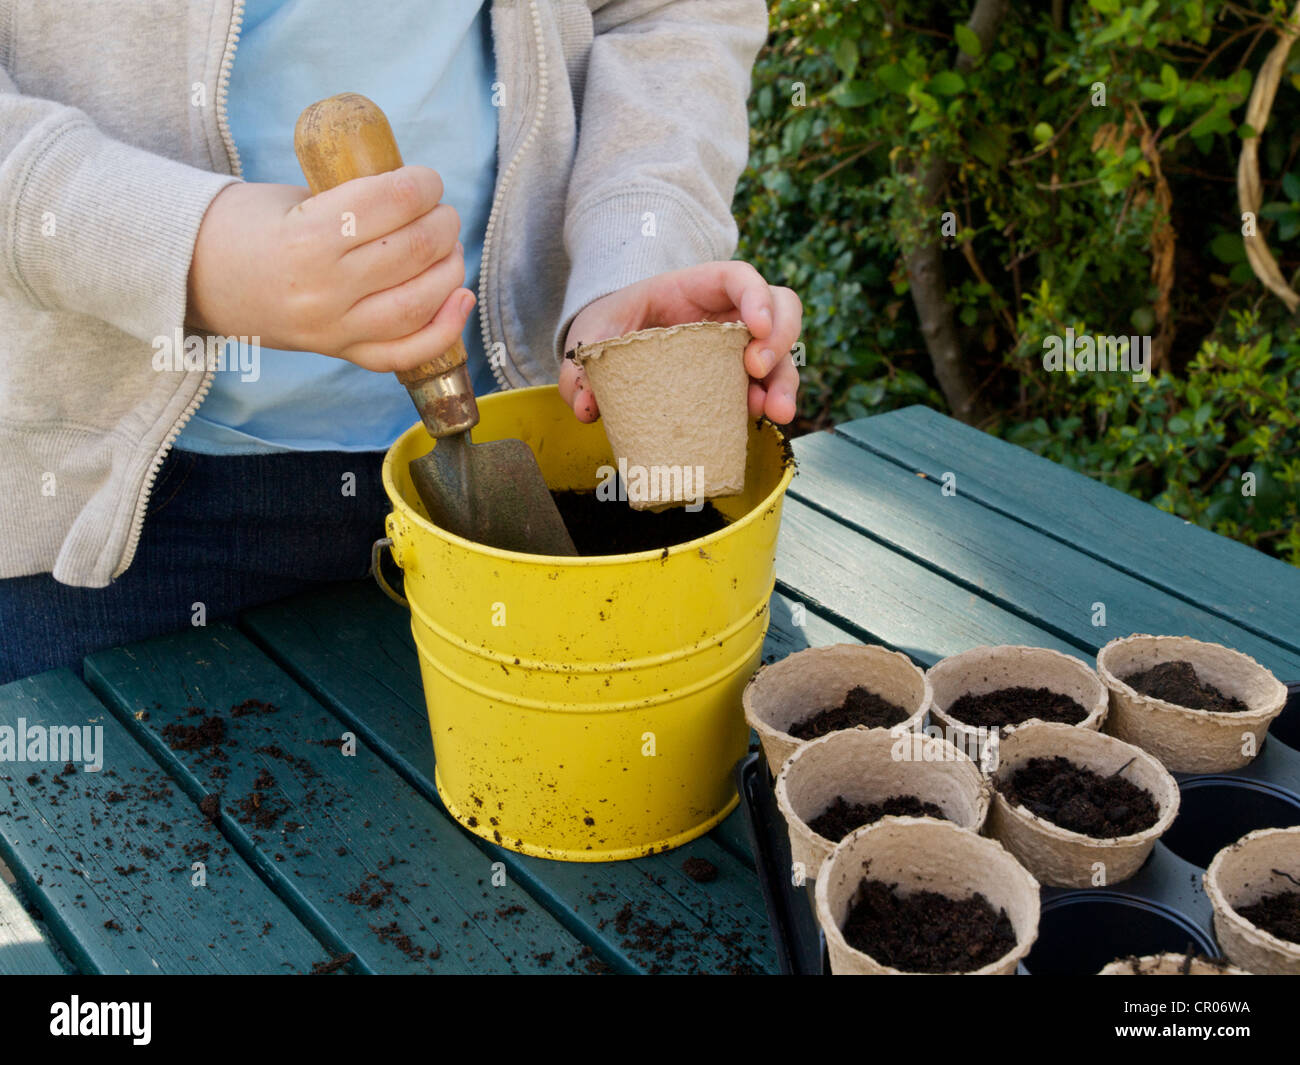 Child Filling Small Plant Pots With Compost To Plant Seeds Using A